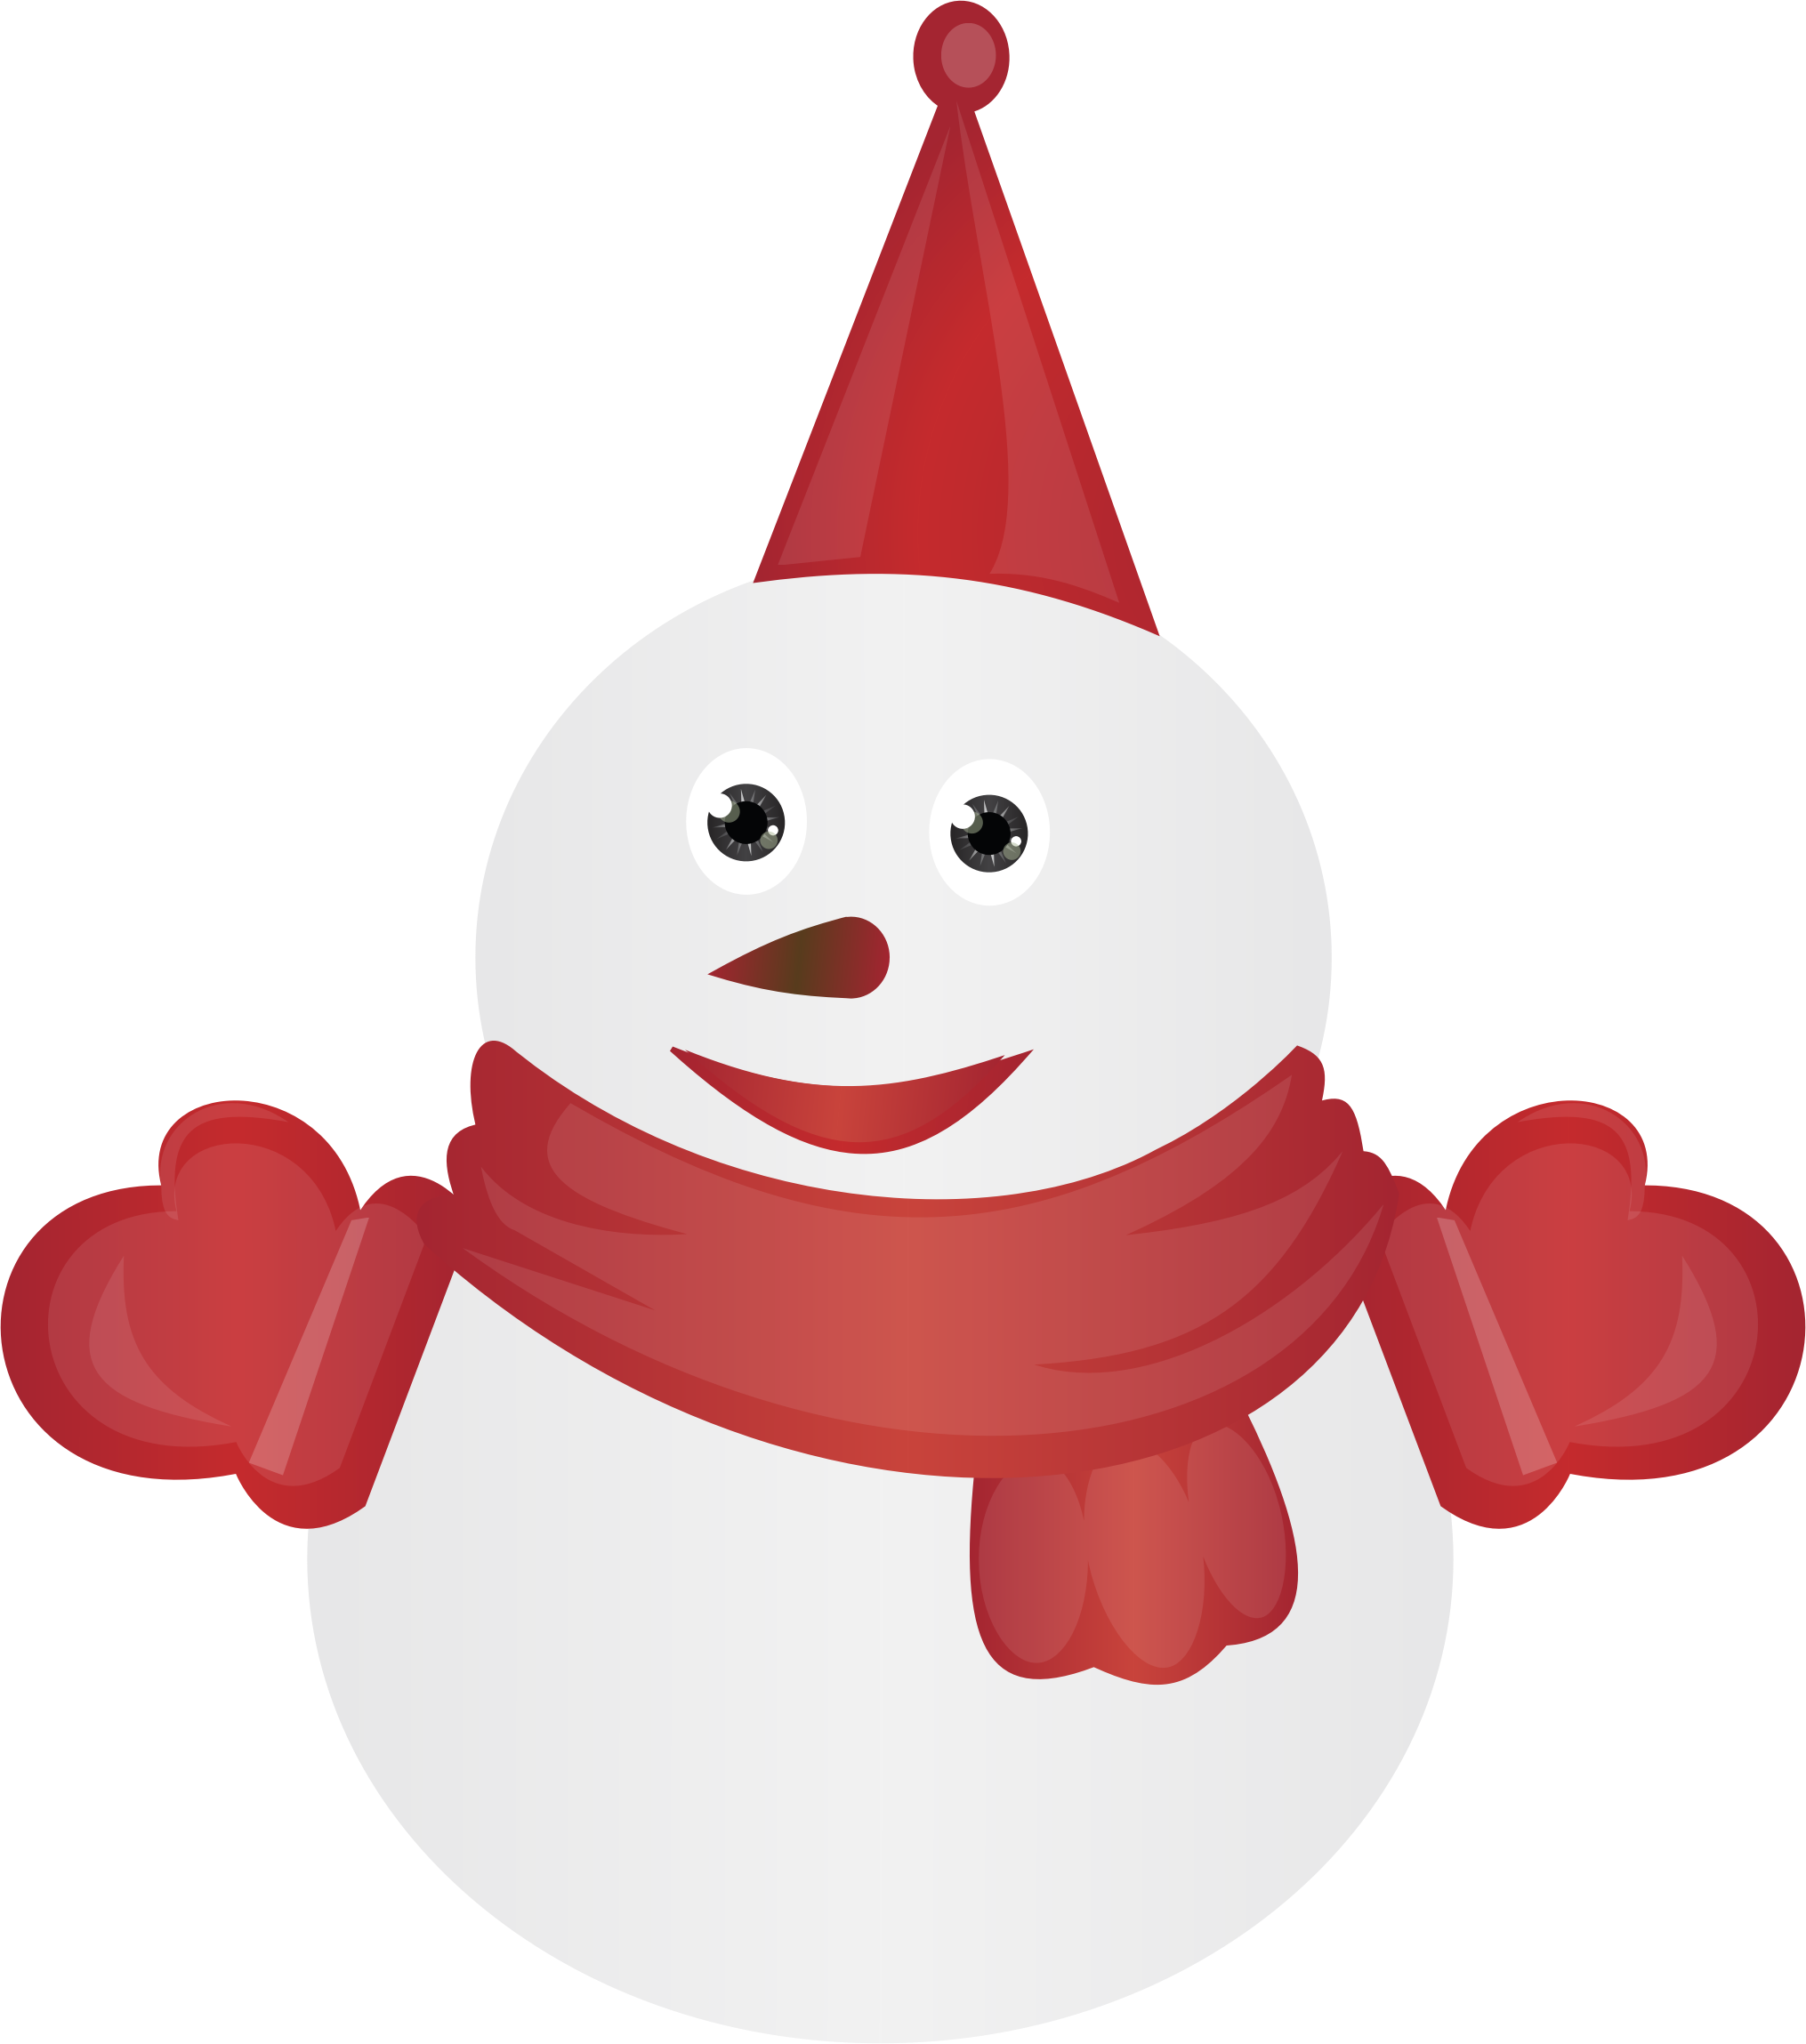 snowman clipart red